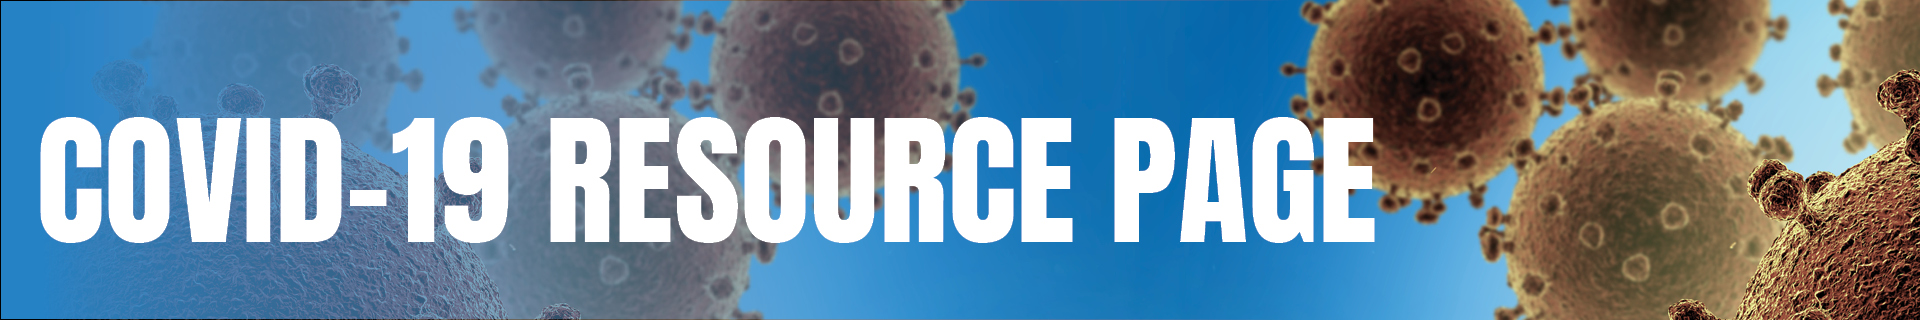 Polk County COVID-19 Resource Page Banner with Background Image of Virus Cells